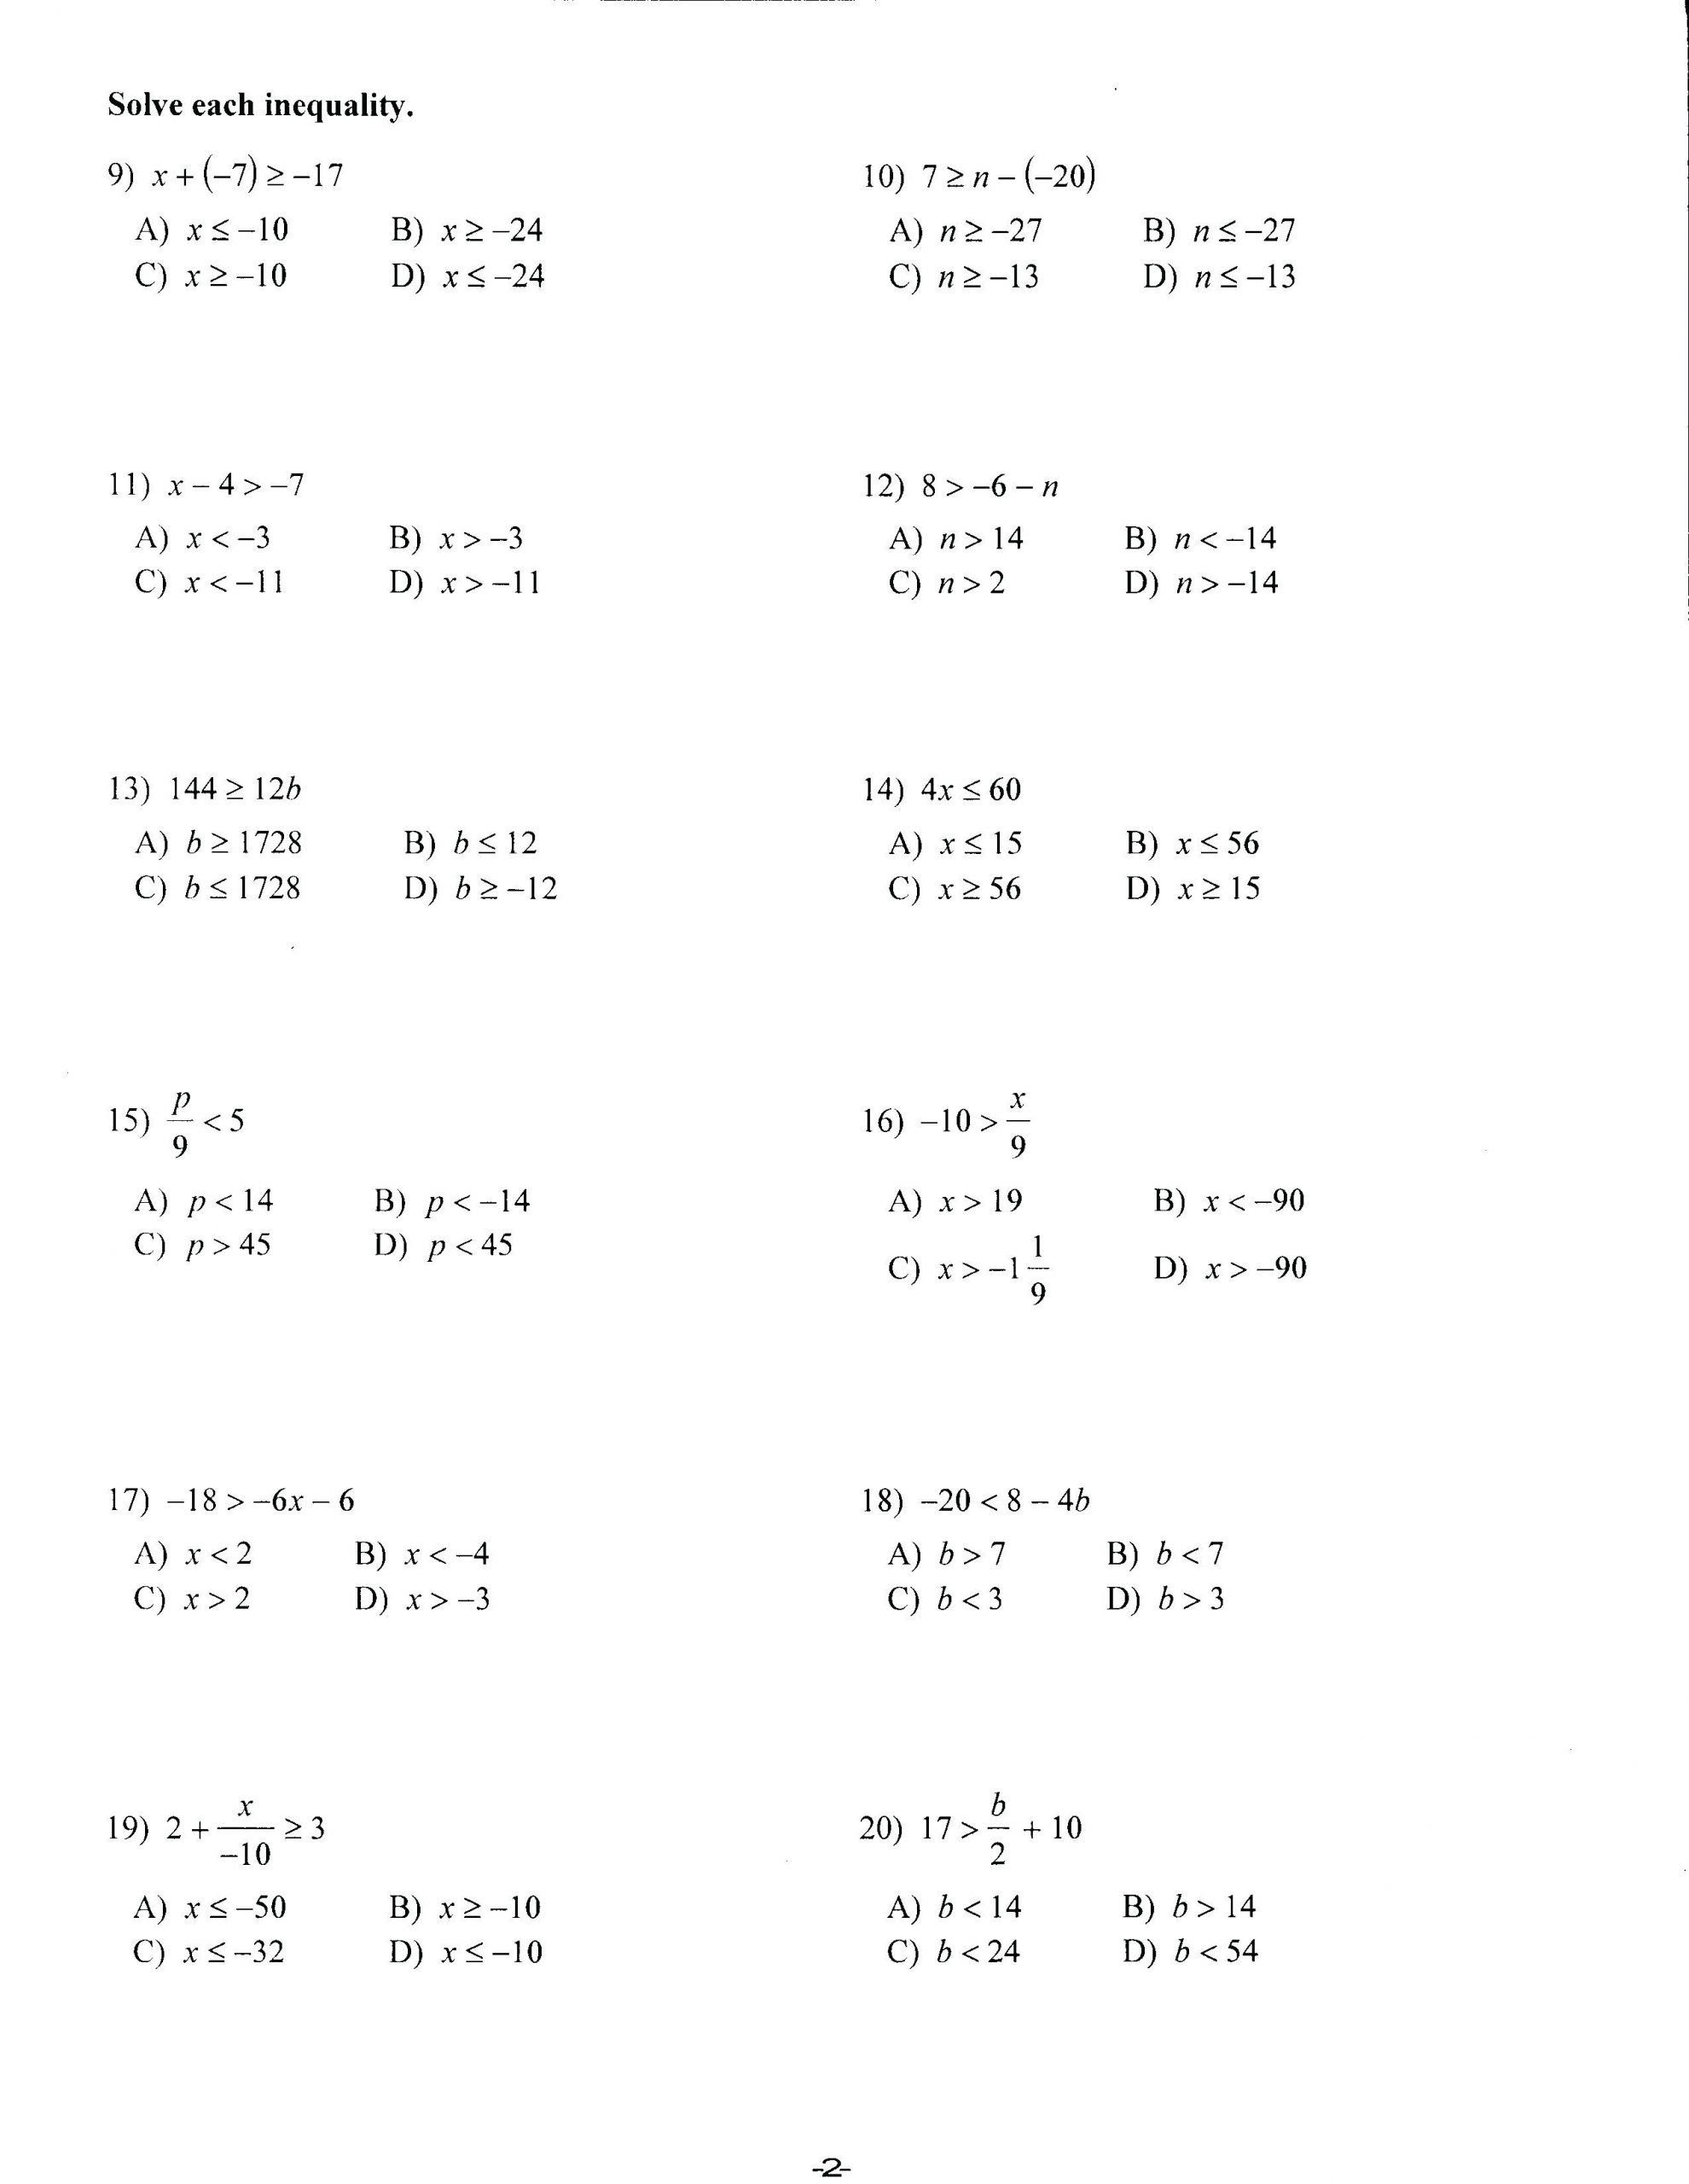 10th Grade Math Worksheets Grade 9 Math Worksheets In